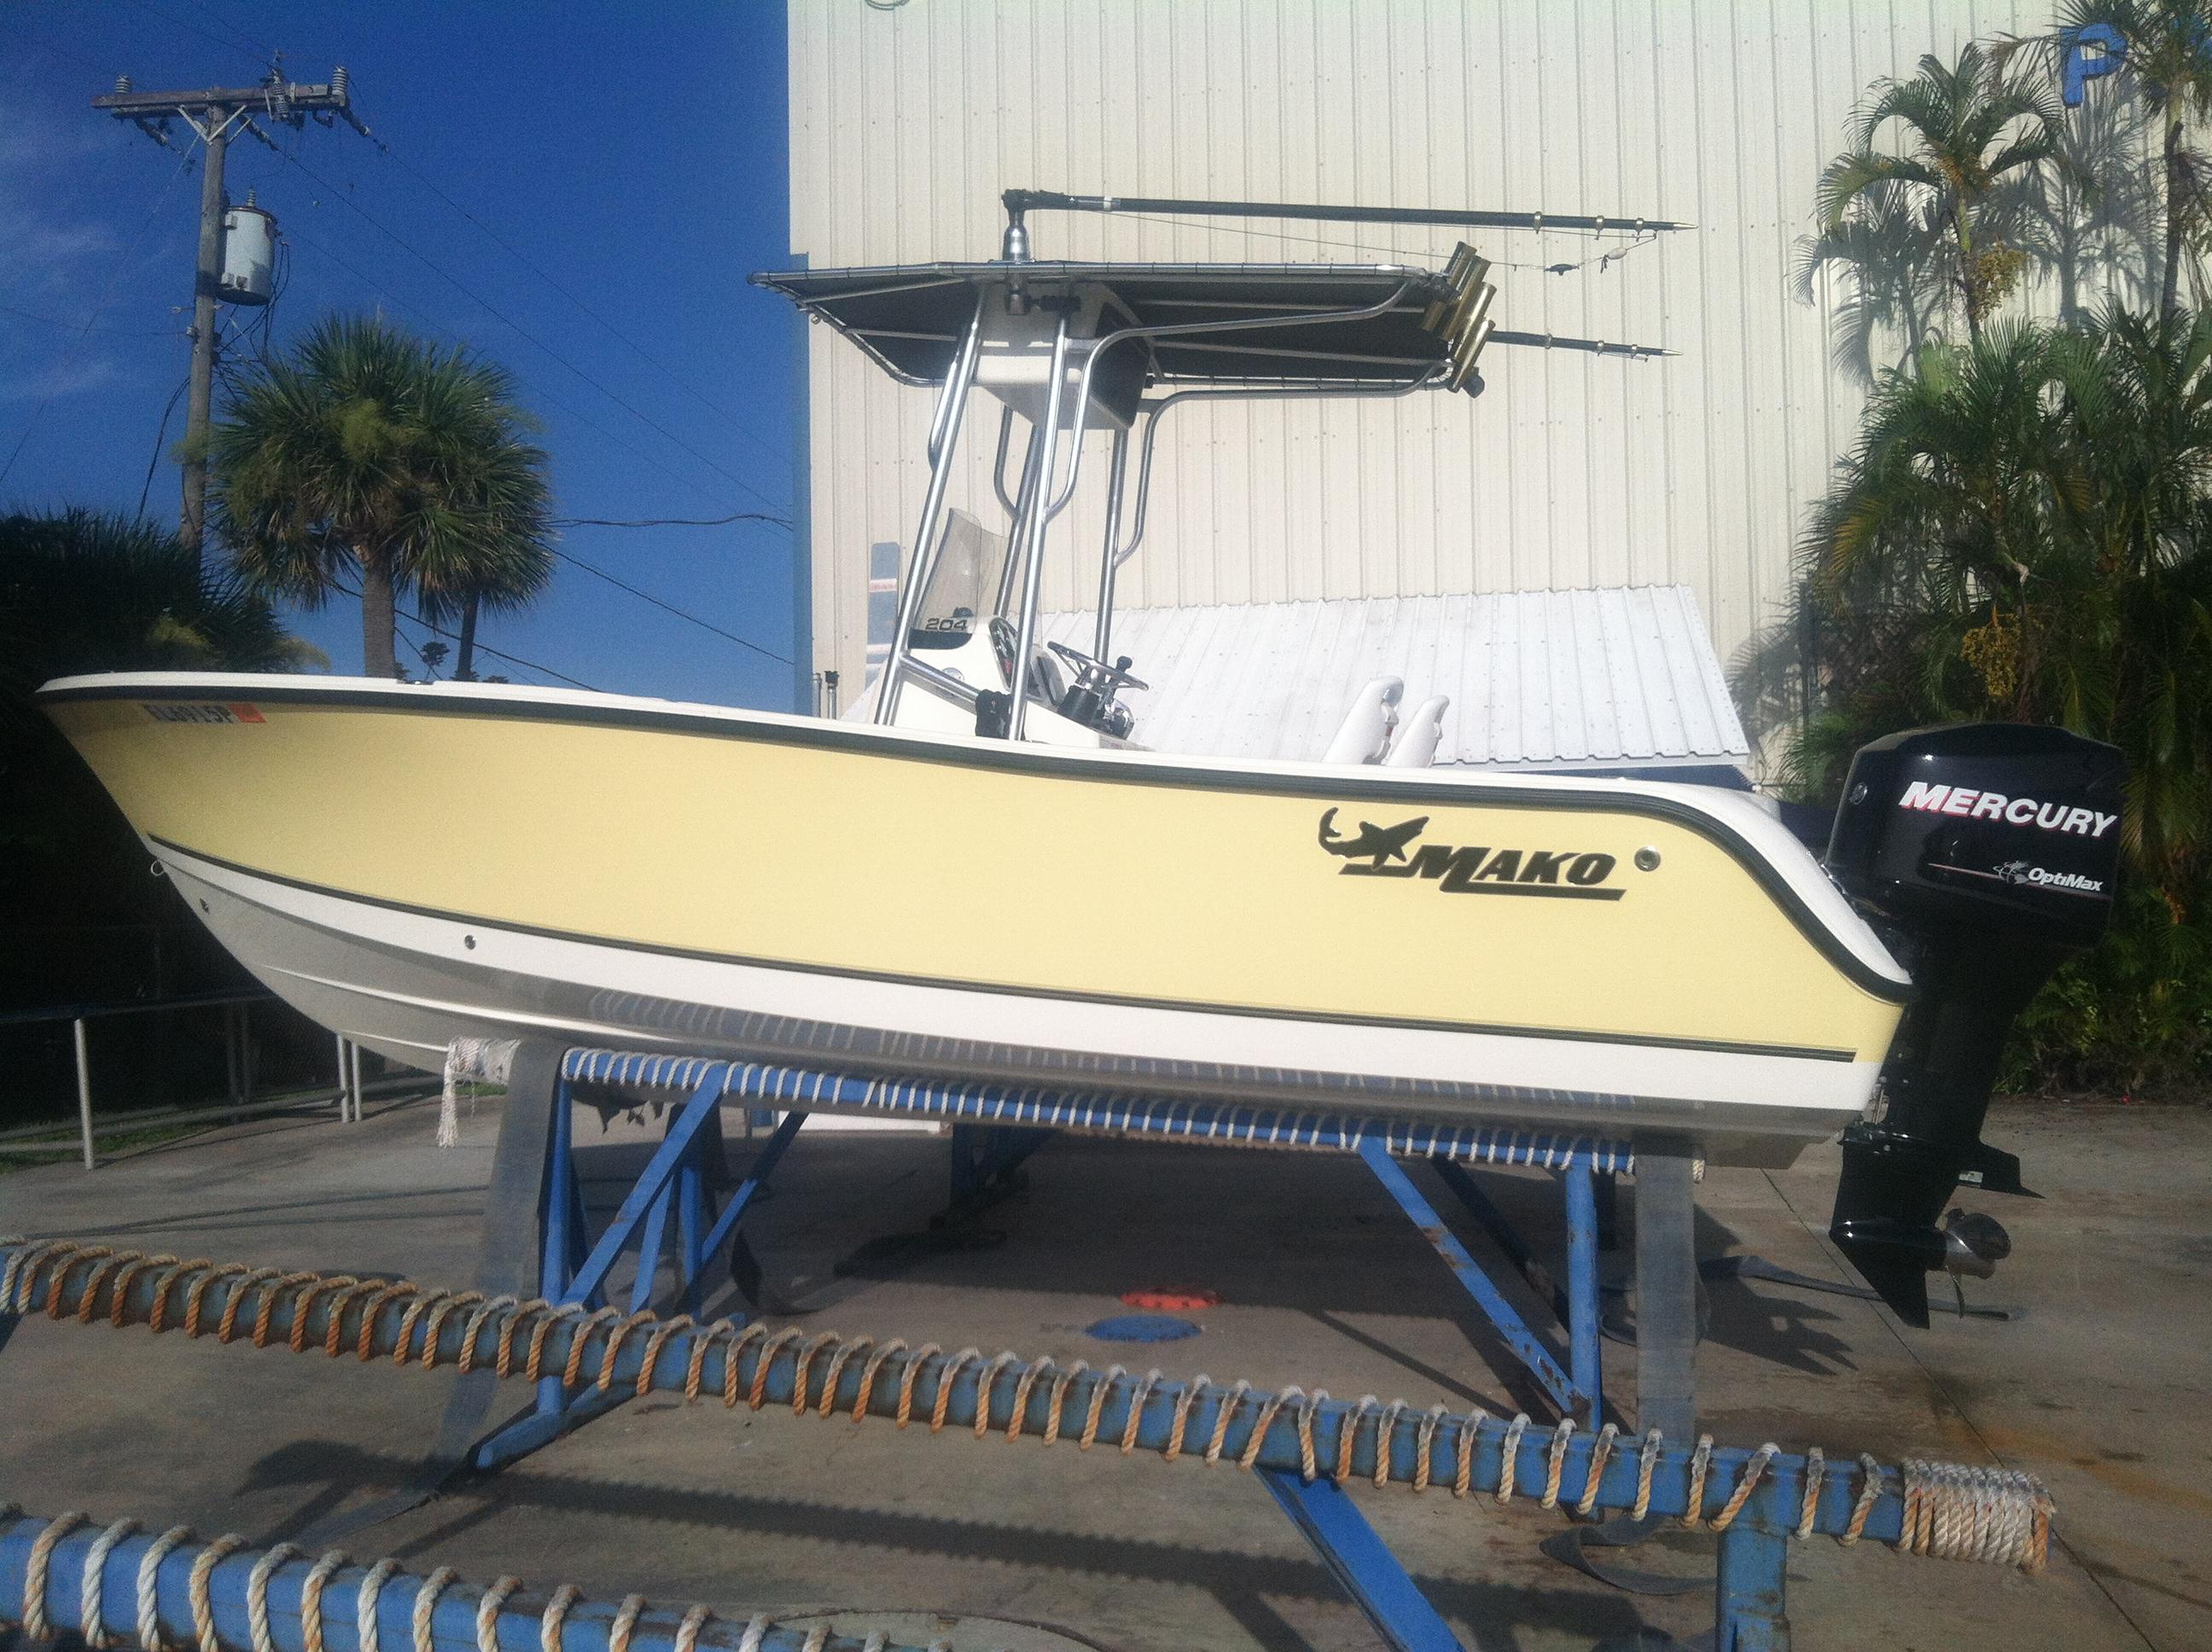 1976 23 Mako Boat proxy server bet365 who pho.to 365 live bet for Sale